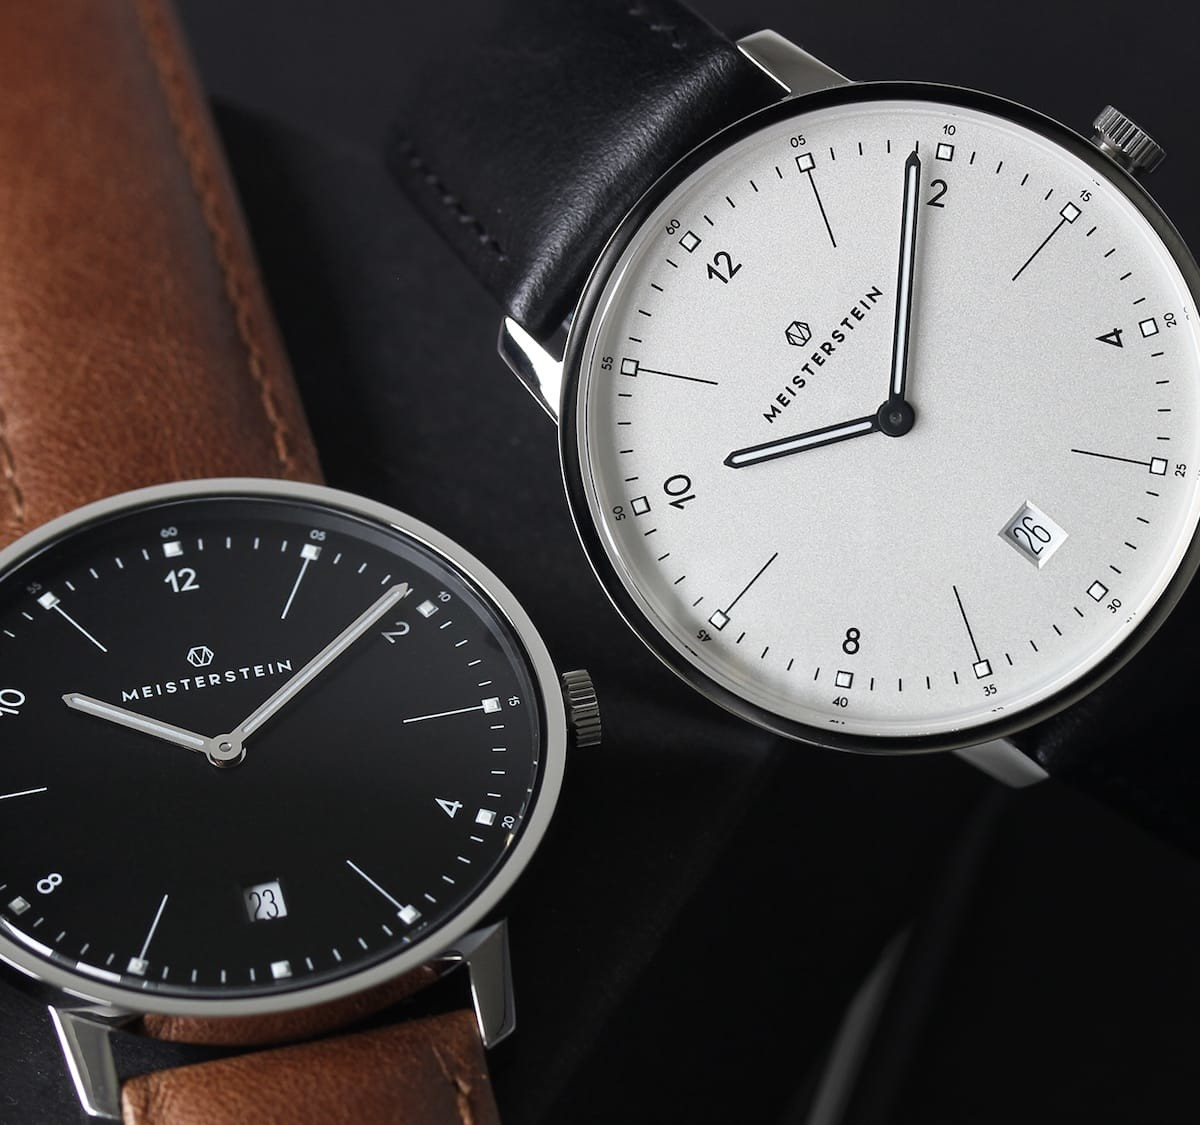 MINOA Bauhaus-inspired watch is incredibly gorgeous, minimalist, and precise